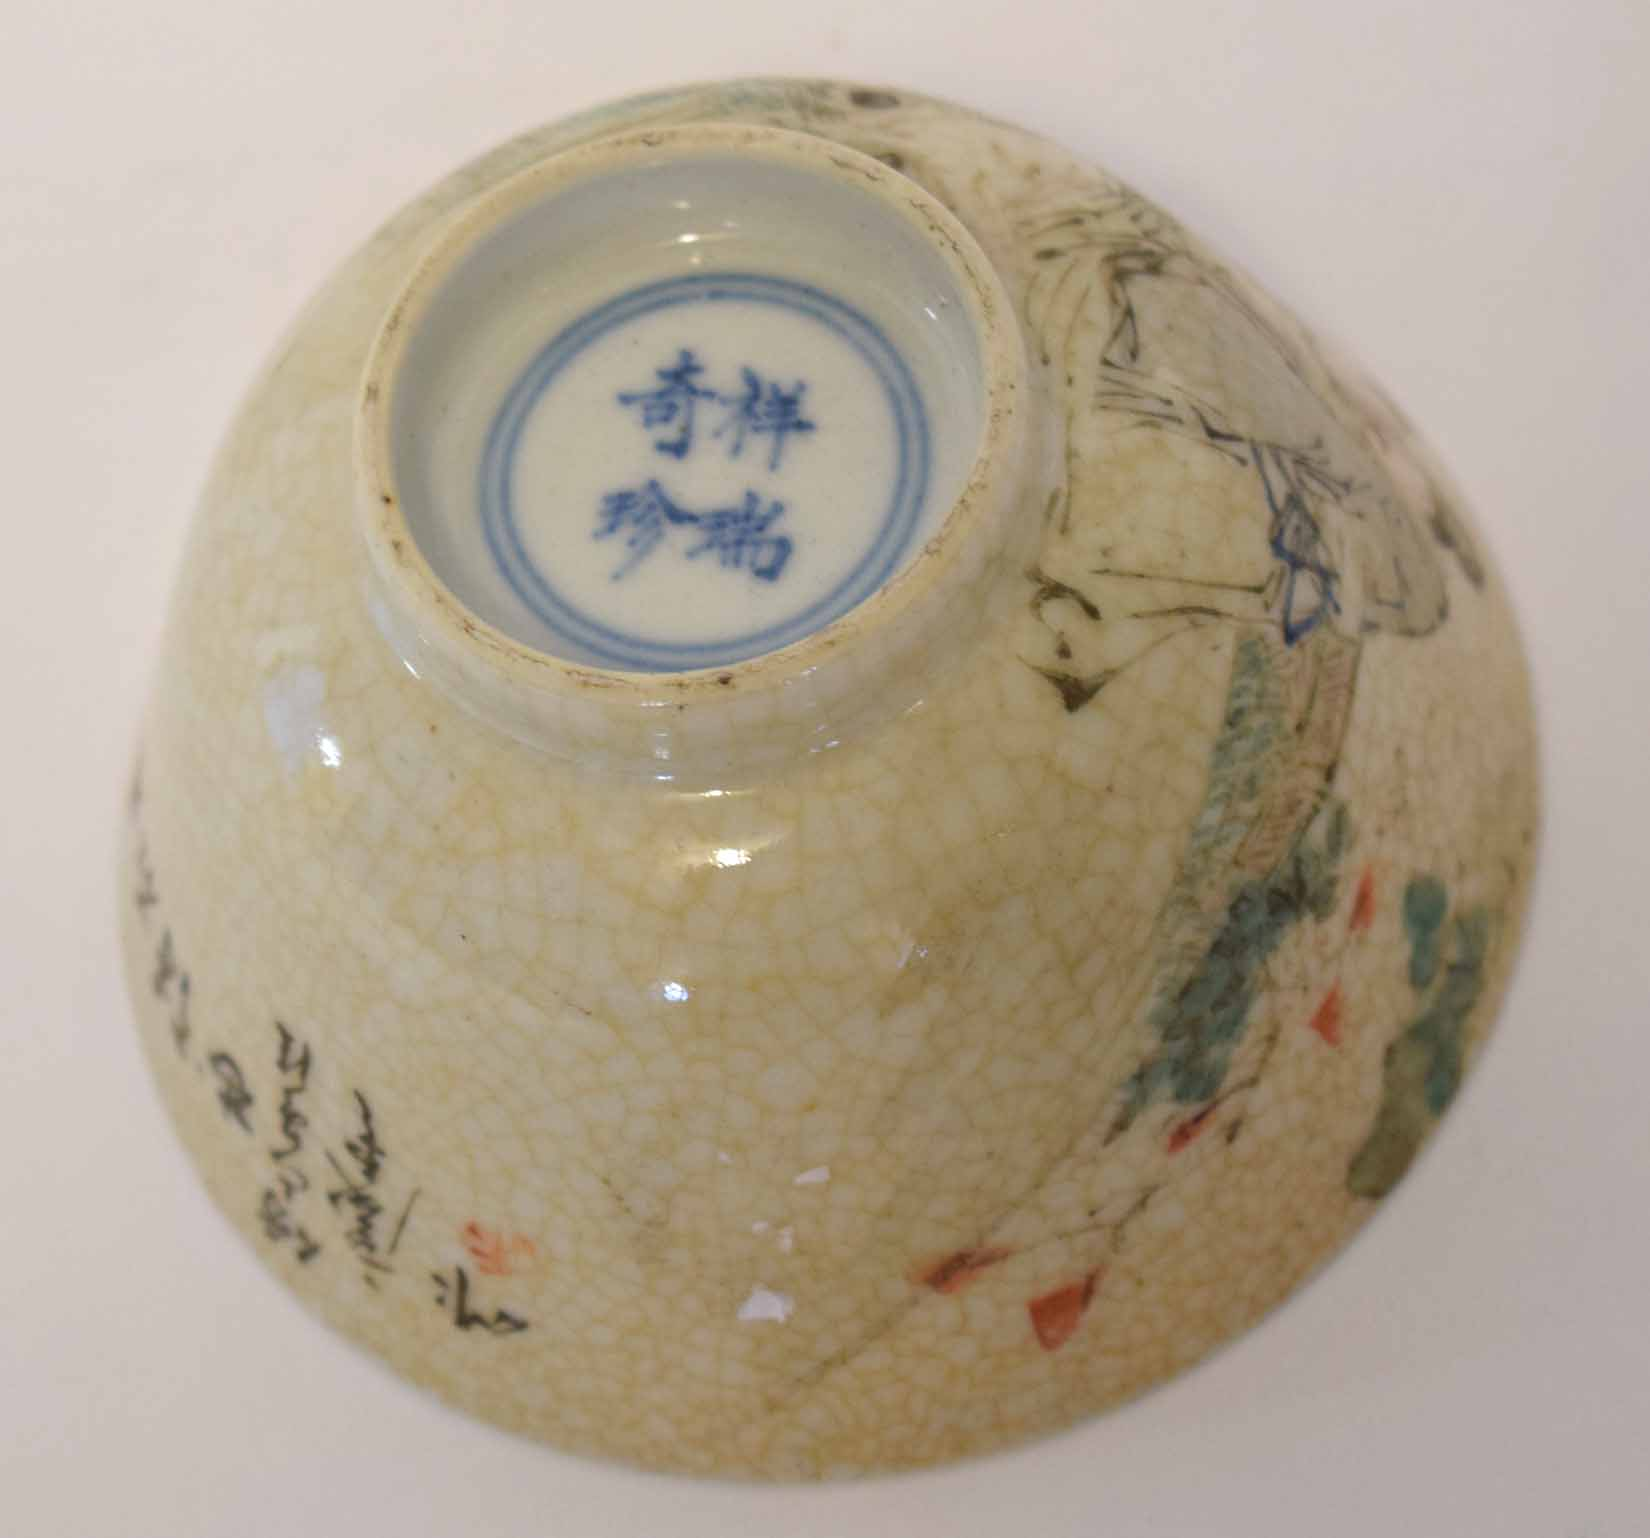 Lot 11 - 19th century Chinese crackle ware bowl with polychrome decoration of two figures in a garden setting